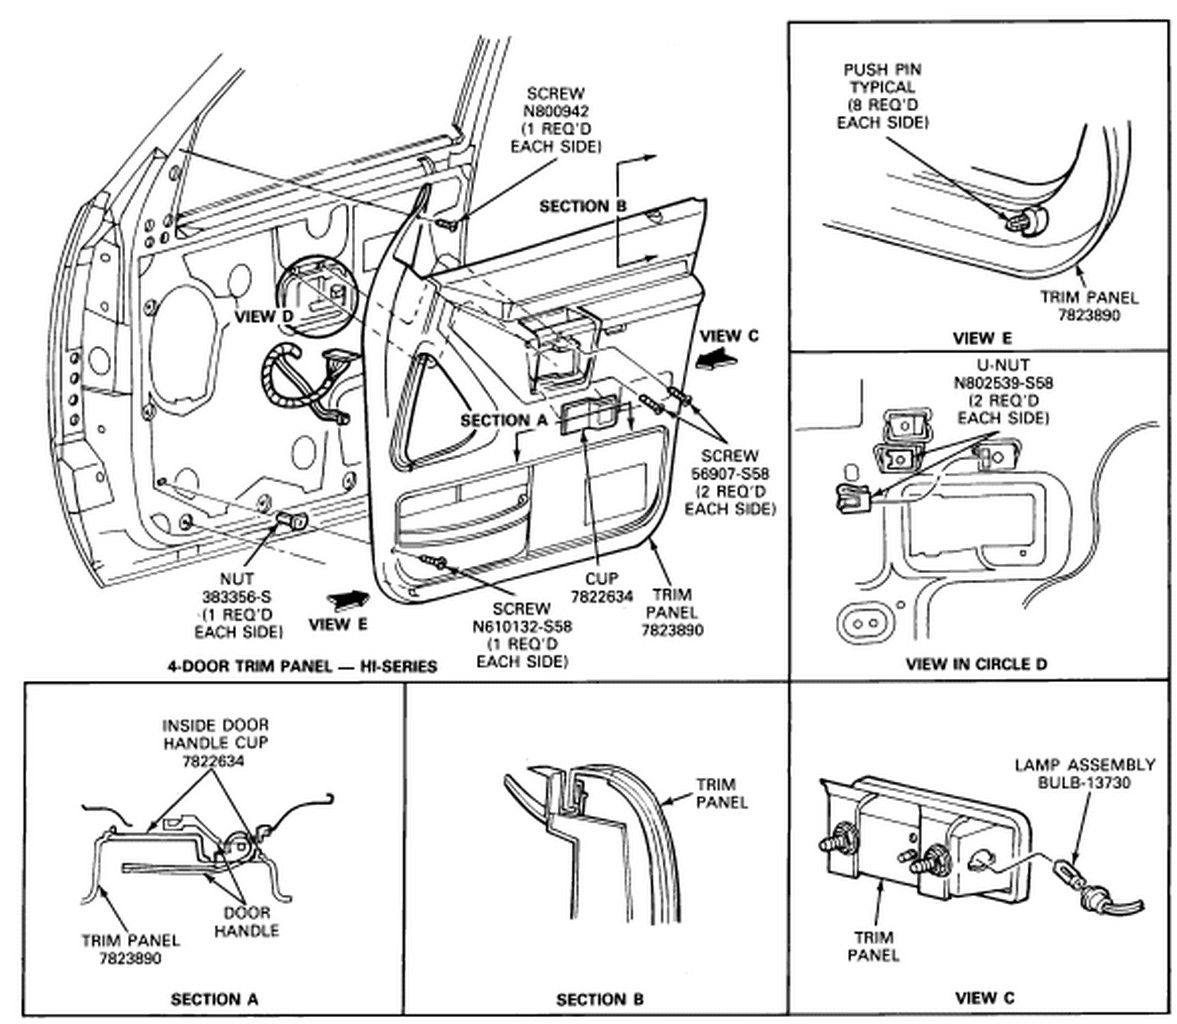 ford fusion door diagram wiring diagram ford fusion door parts diagram ford fusion door diagram [ 1177 x 1024 Pixel ]